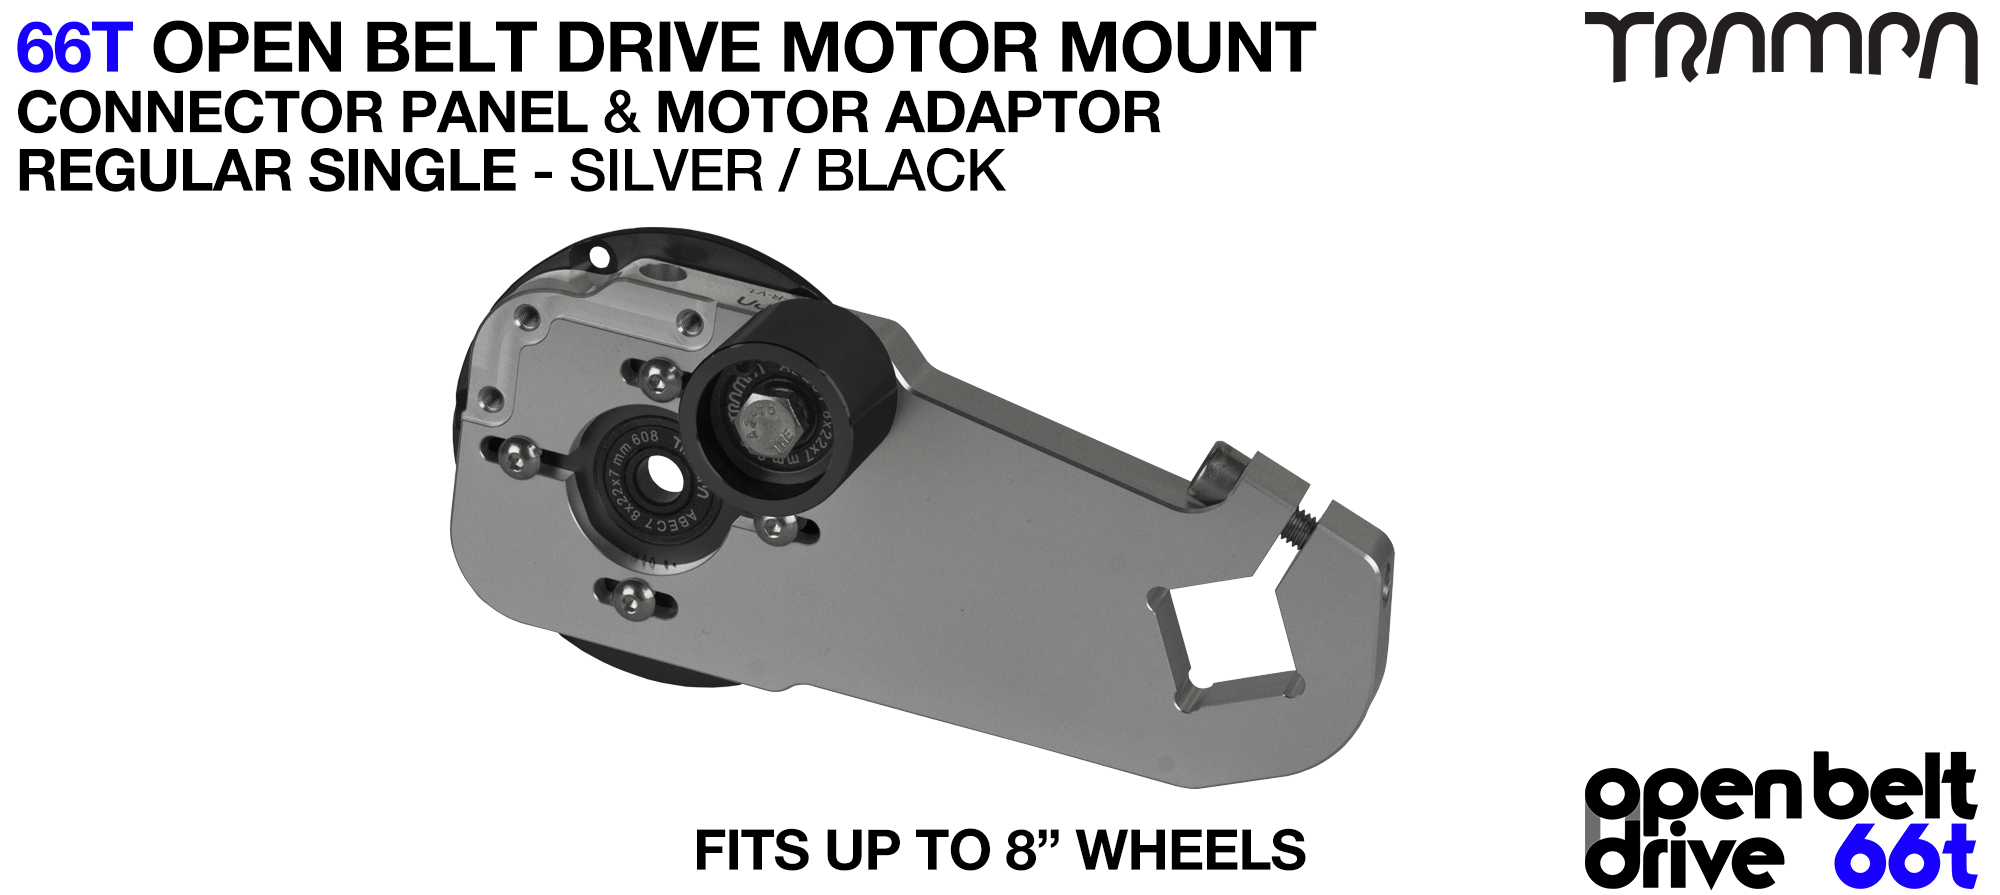 66T OPEN BELT DRIVE Motor Mount & Motor Adaptor - SINGLE SILVER